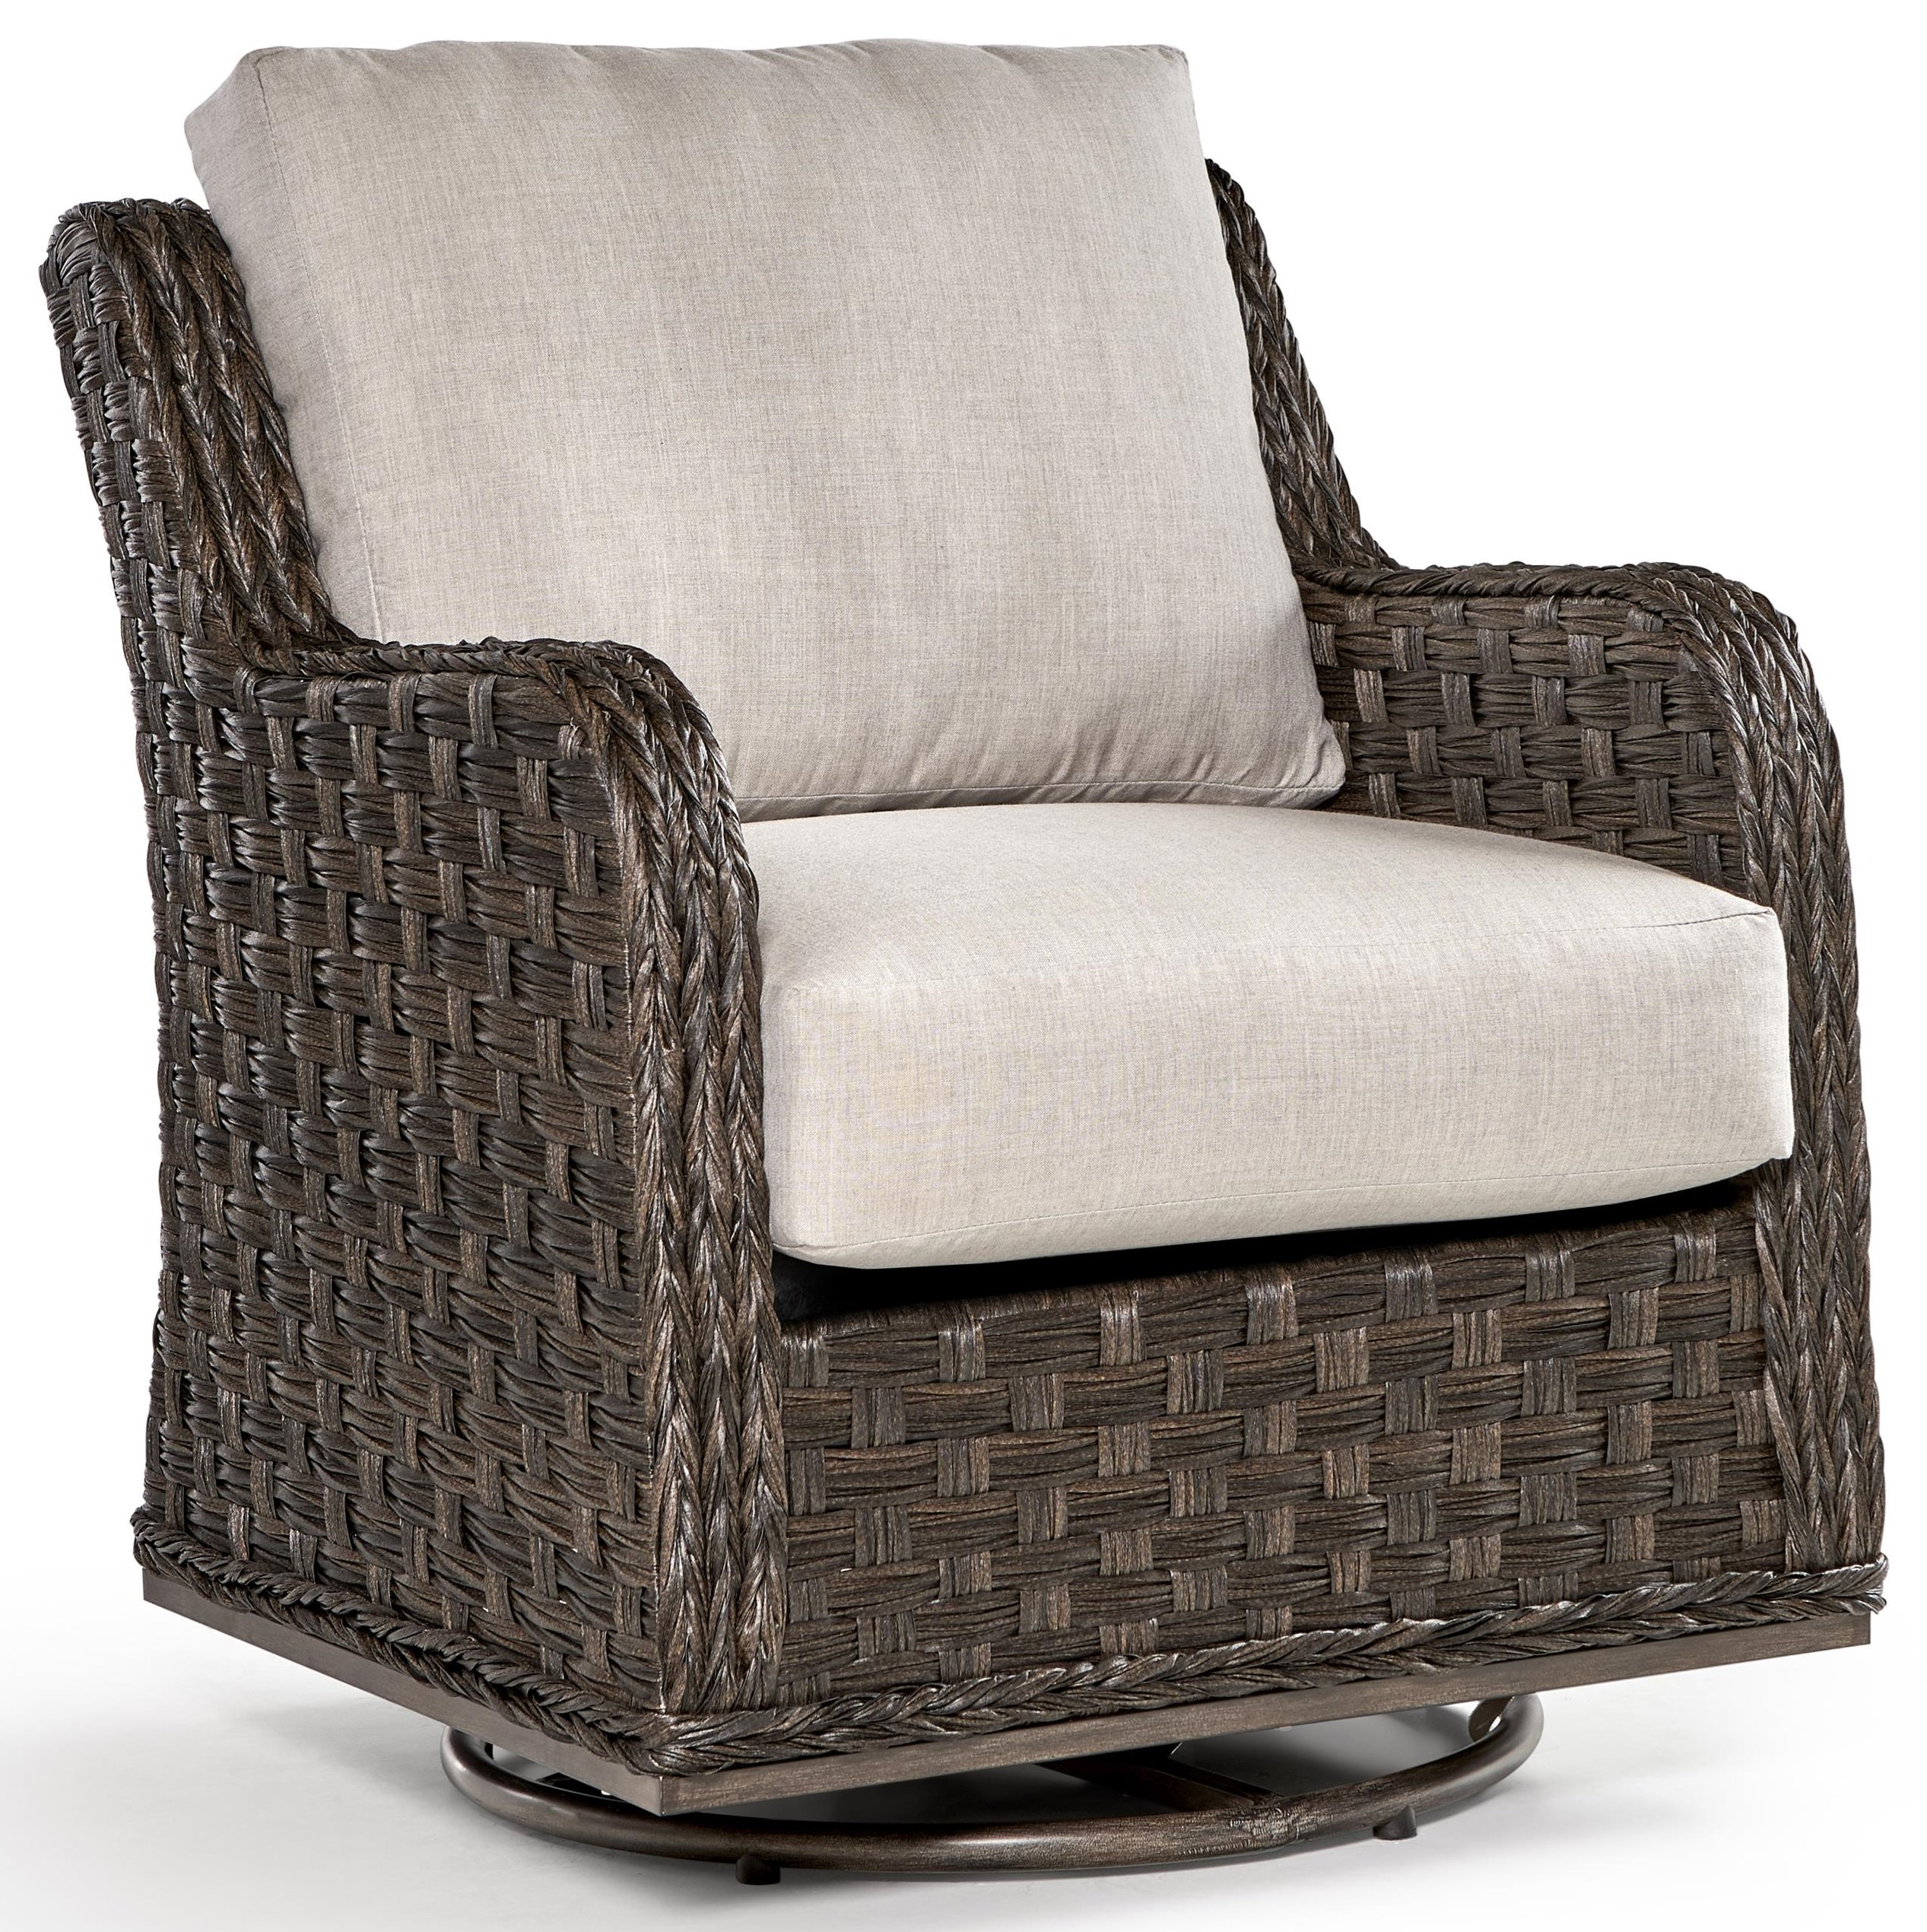 Grande Isle Swivel Glider w/Luxterior Cushions by South Sea Rattan & Wicker at Johnny Janosik